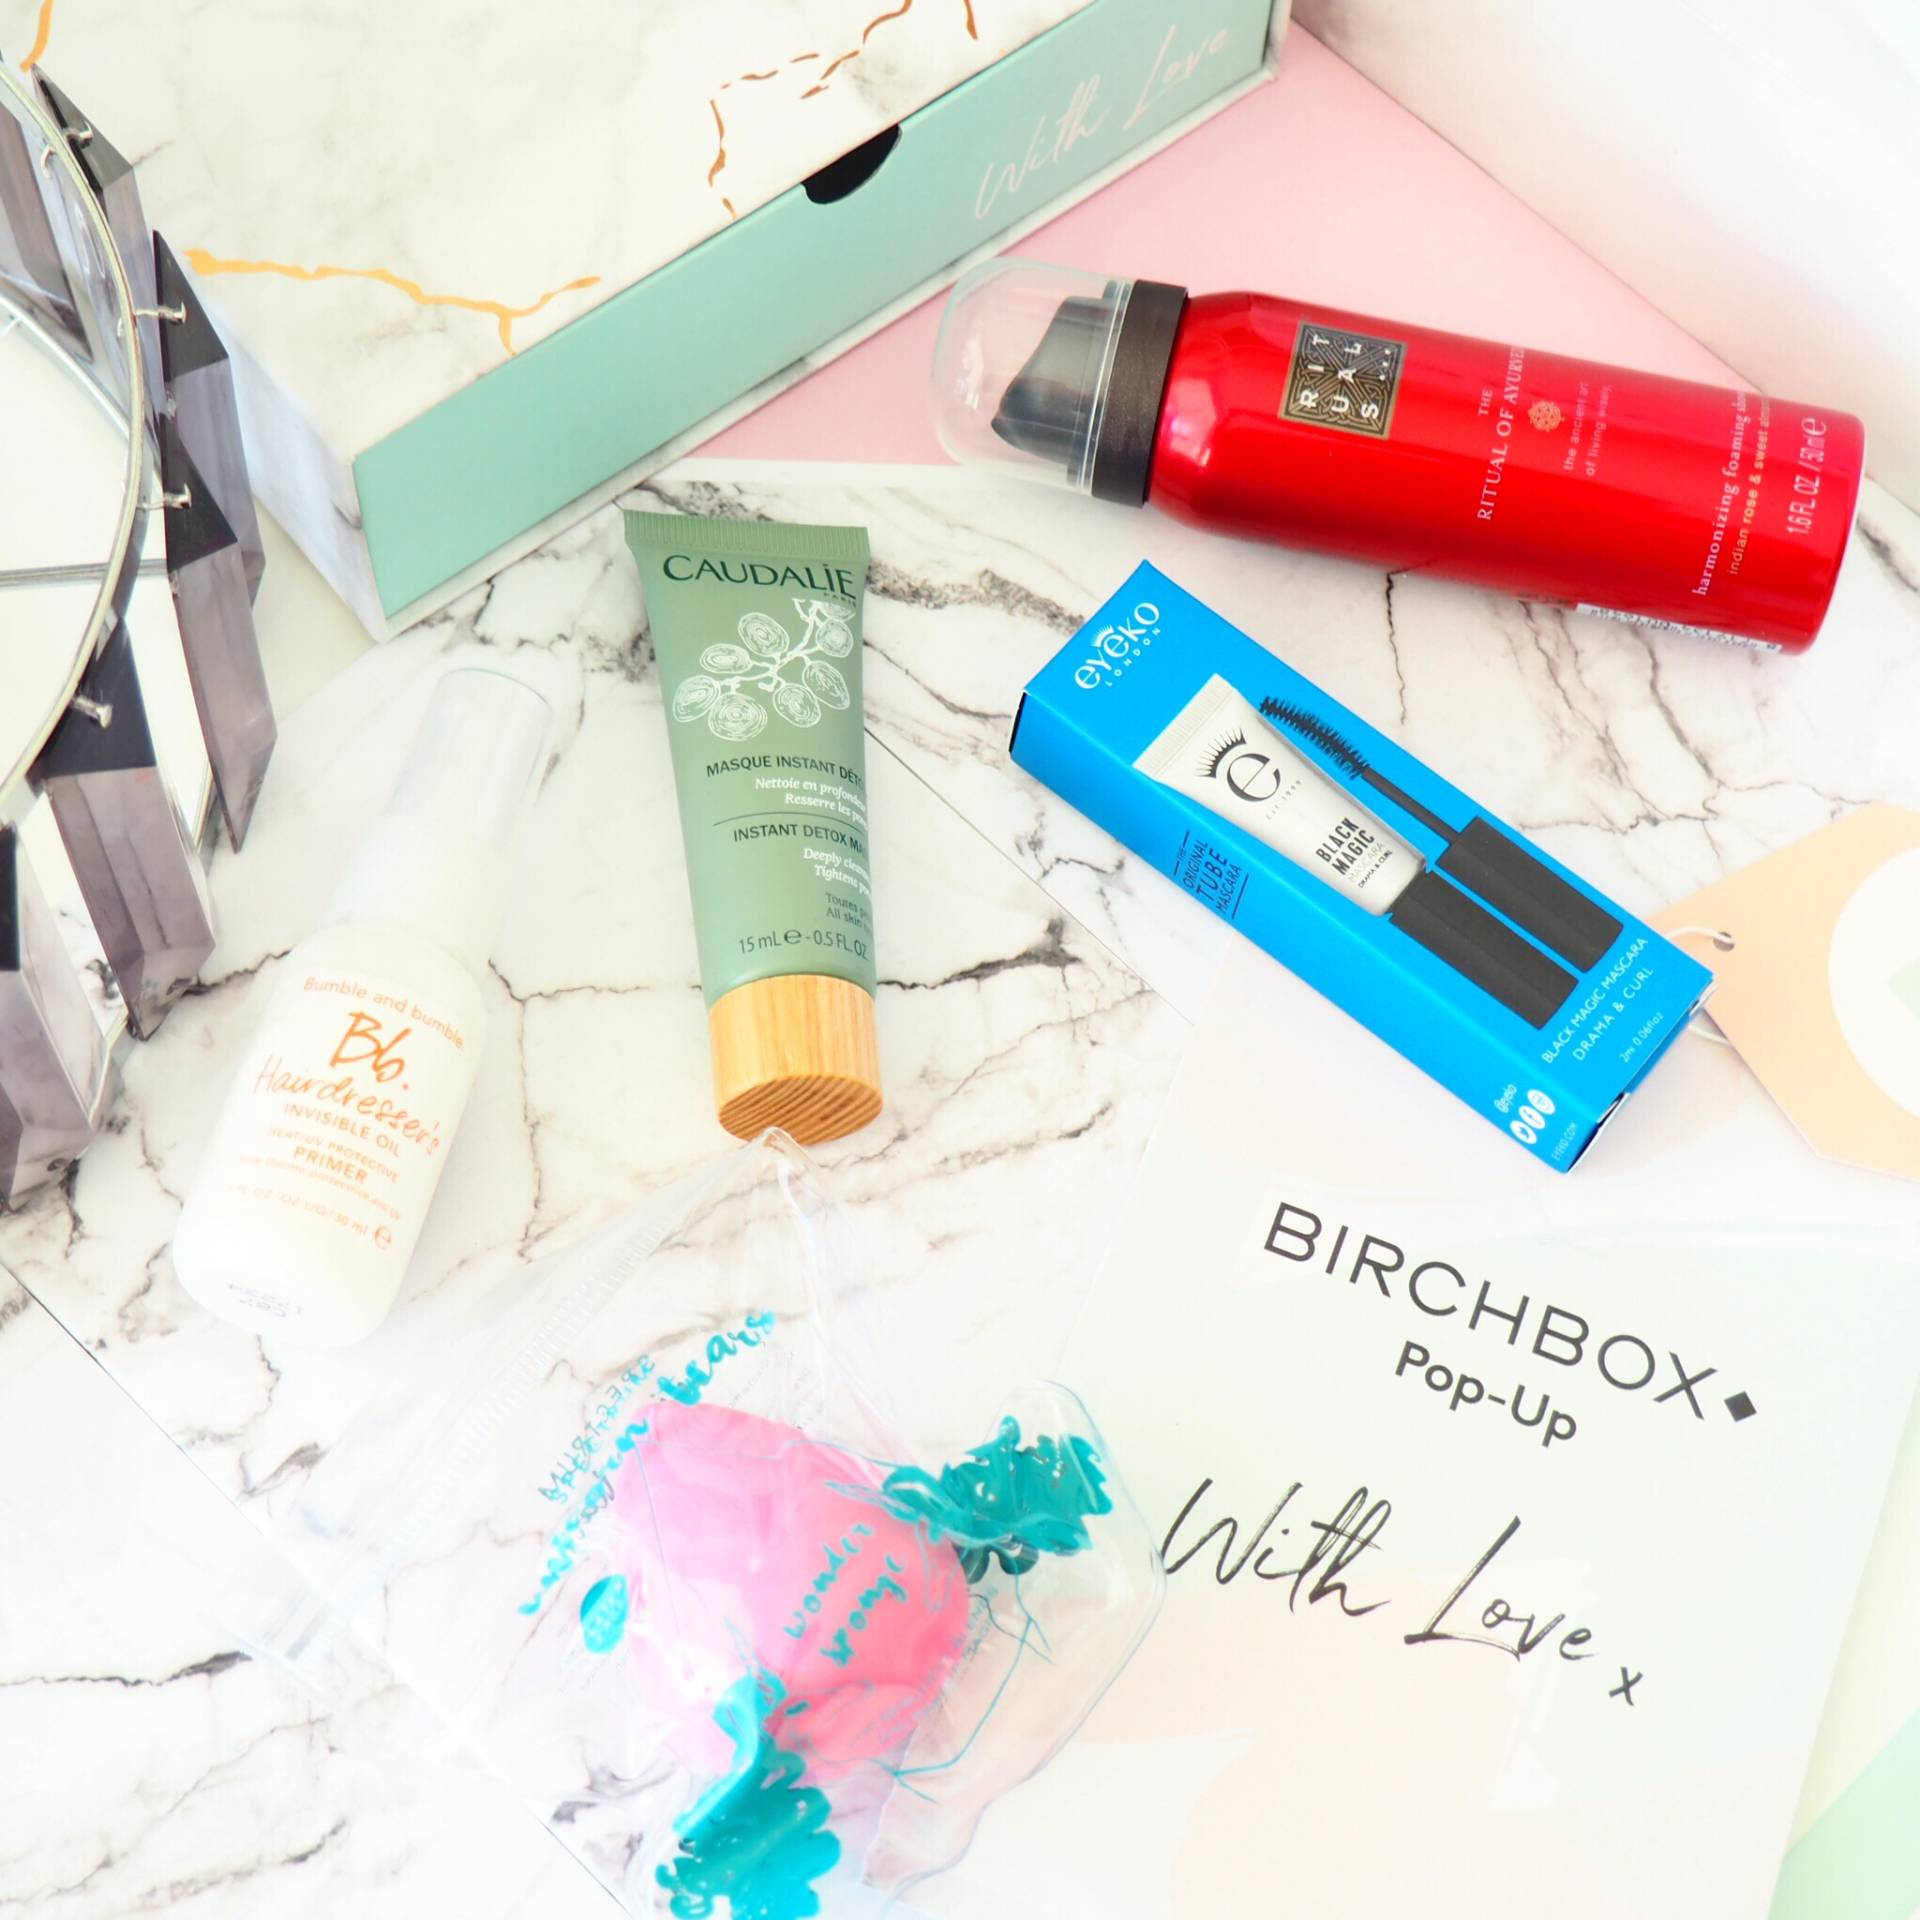 Birchbox PopUp Shop London - Build Your Own Birchbox